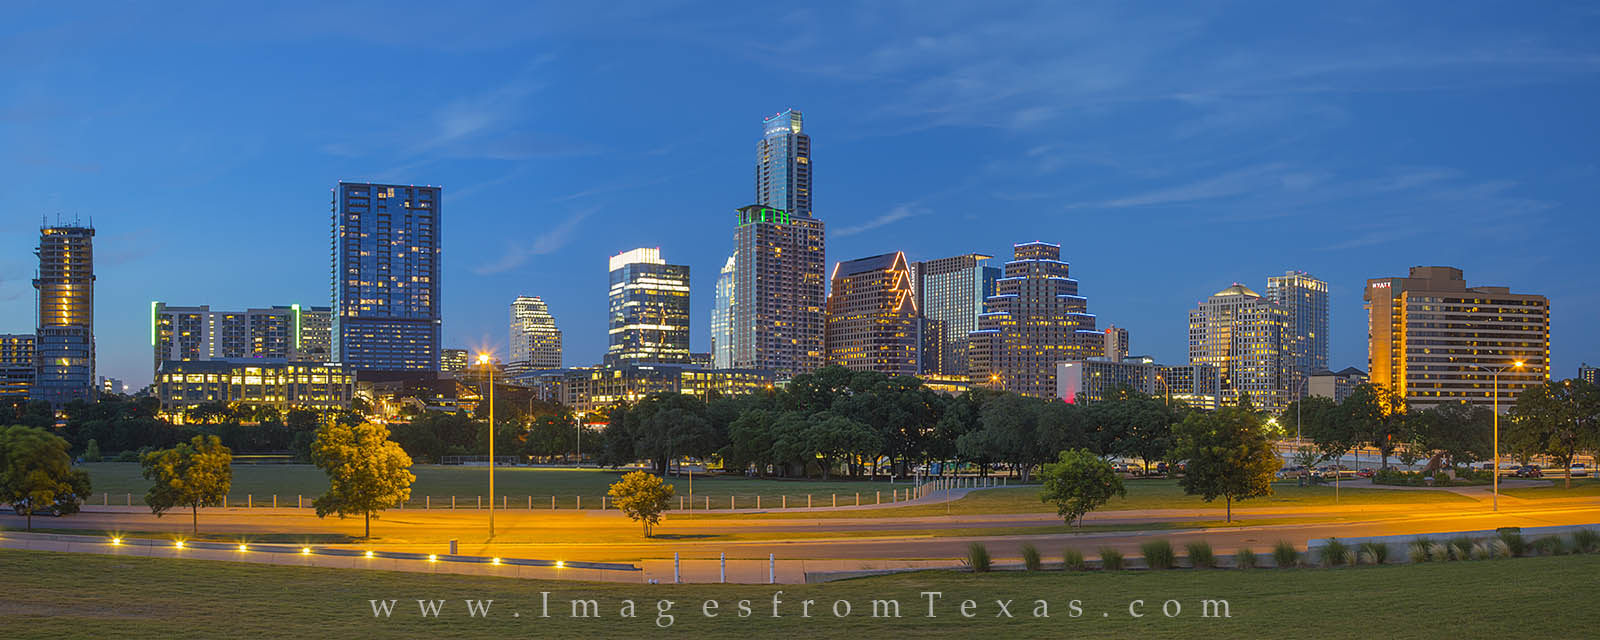 austin texas, austin photography, austin texas prints, austin panorama, austin images, photo